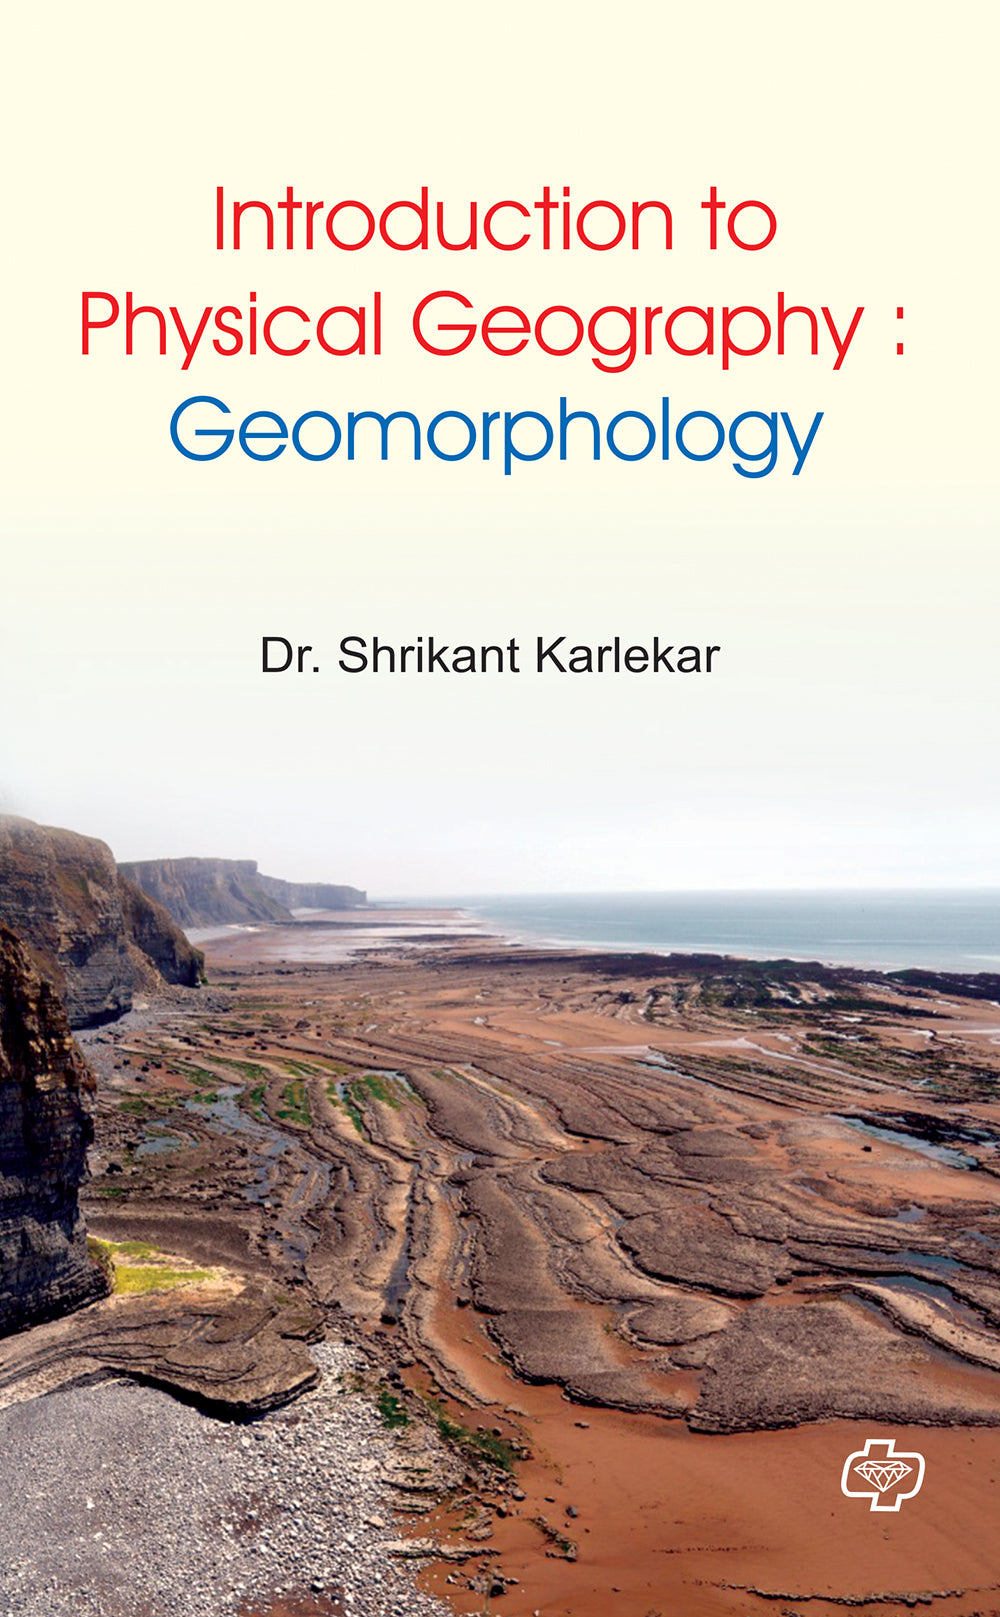 Introduction to Physical Geography : Geomorphology